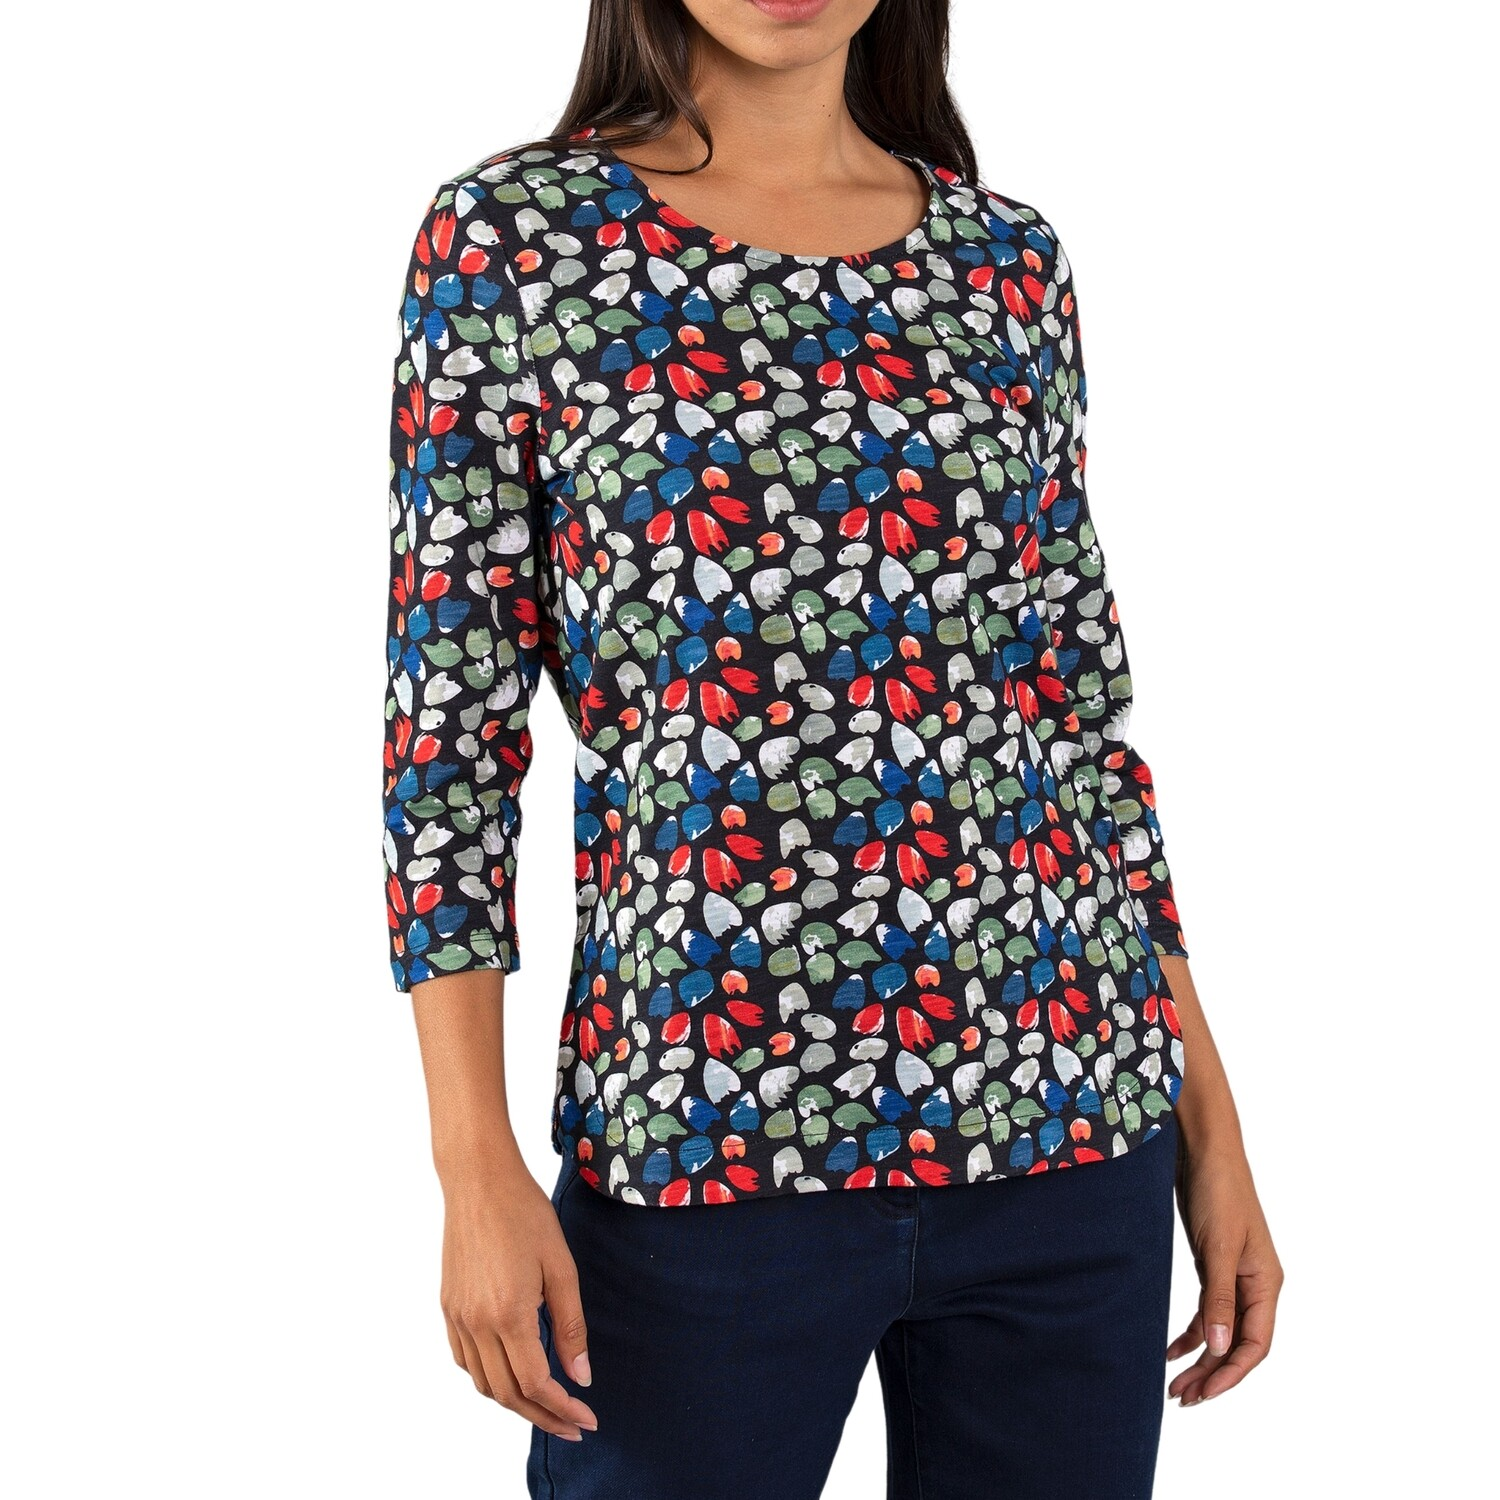 Cluster Print Navy Top by Yarra Trail